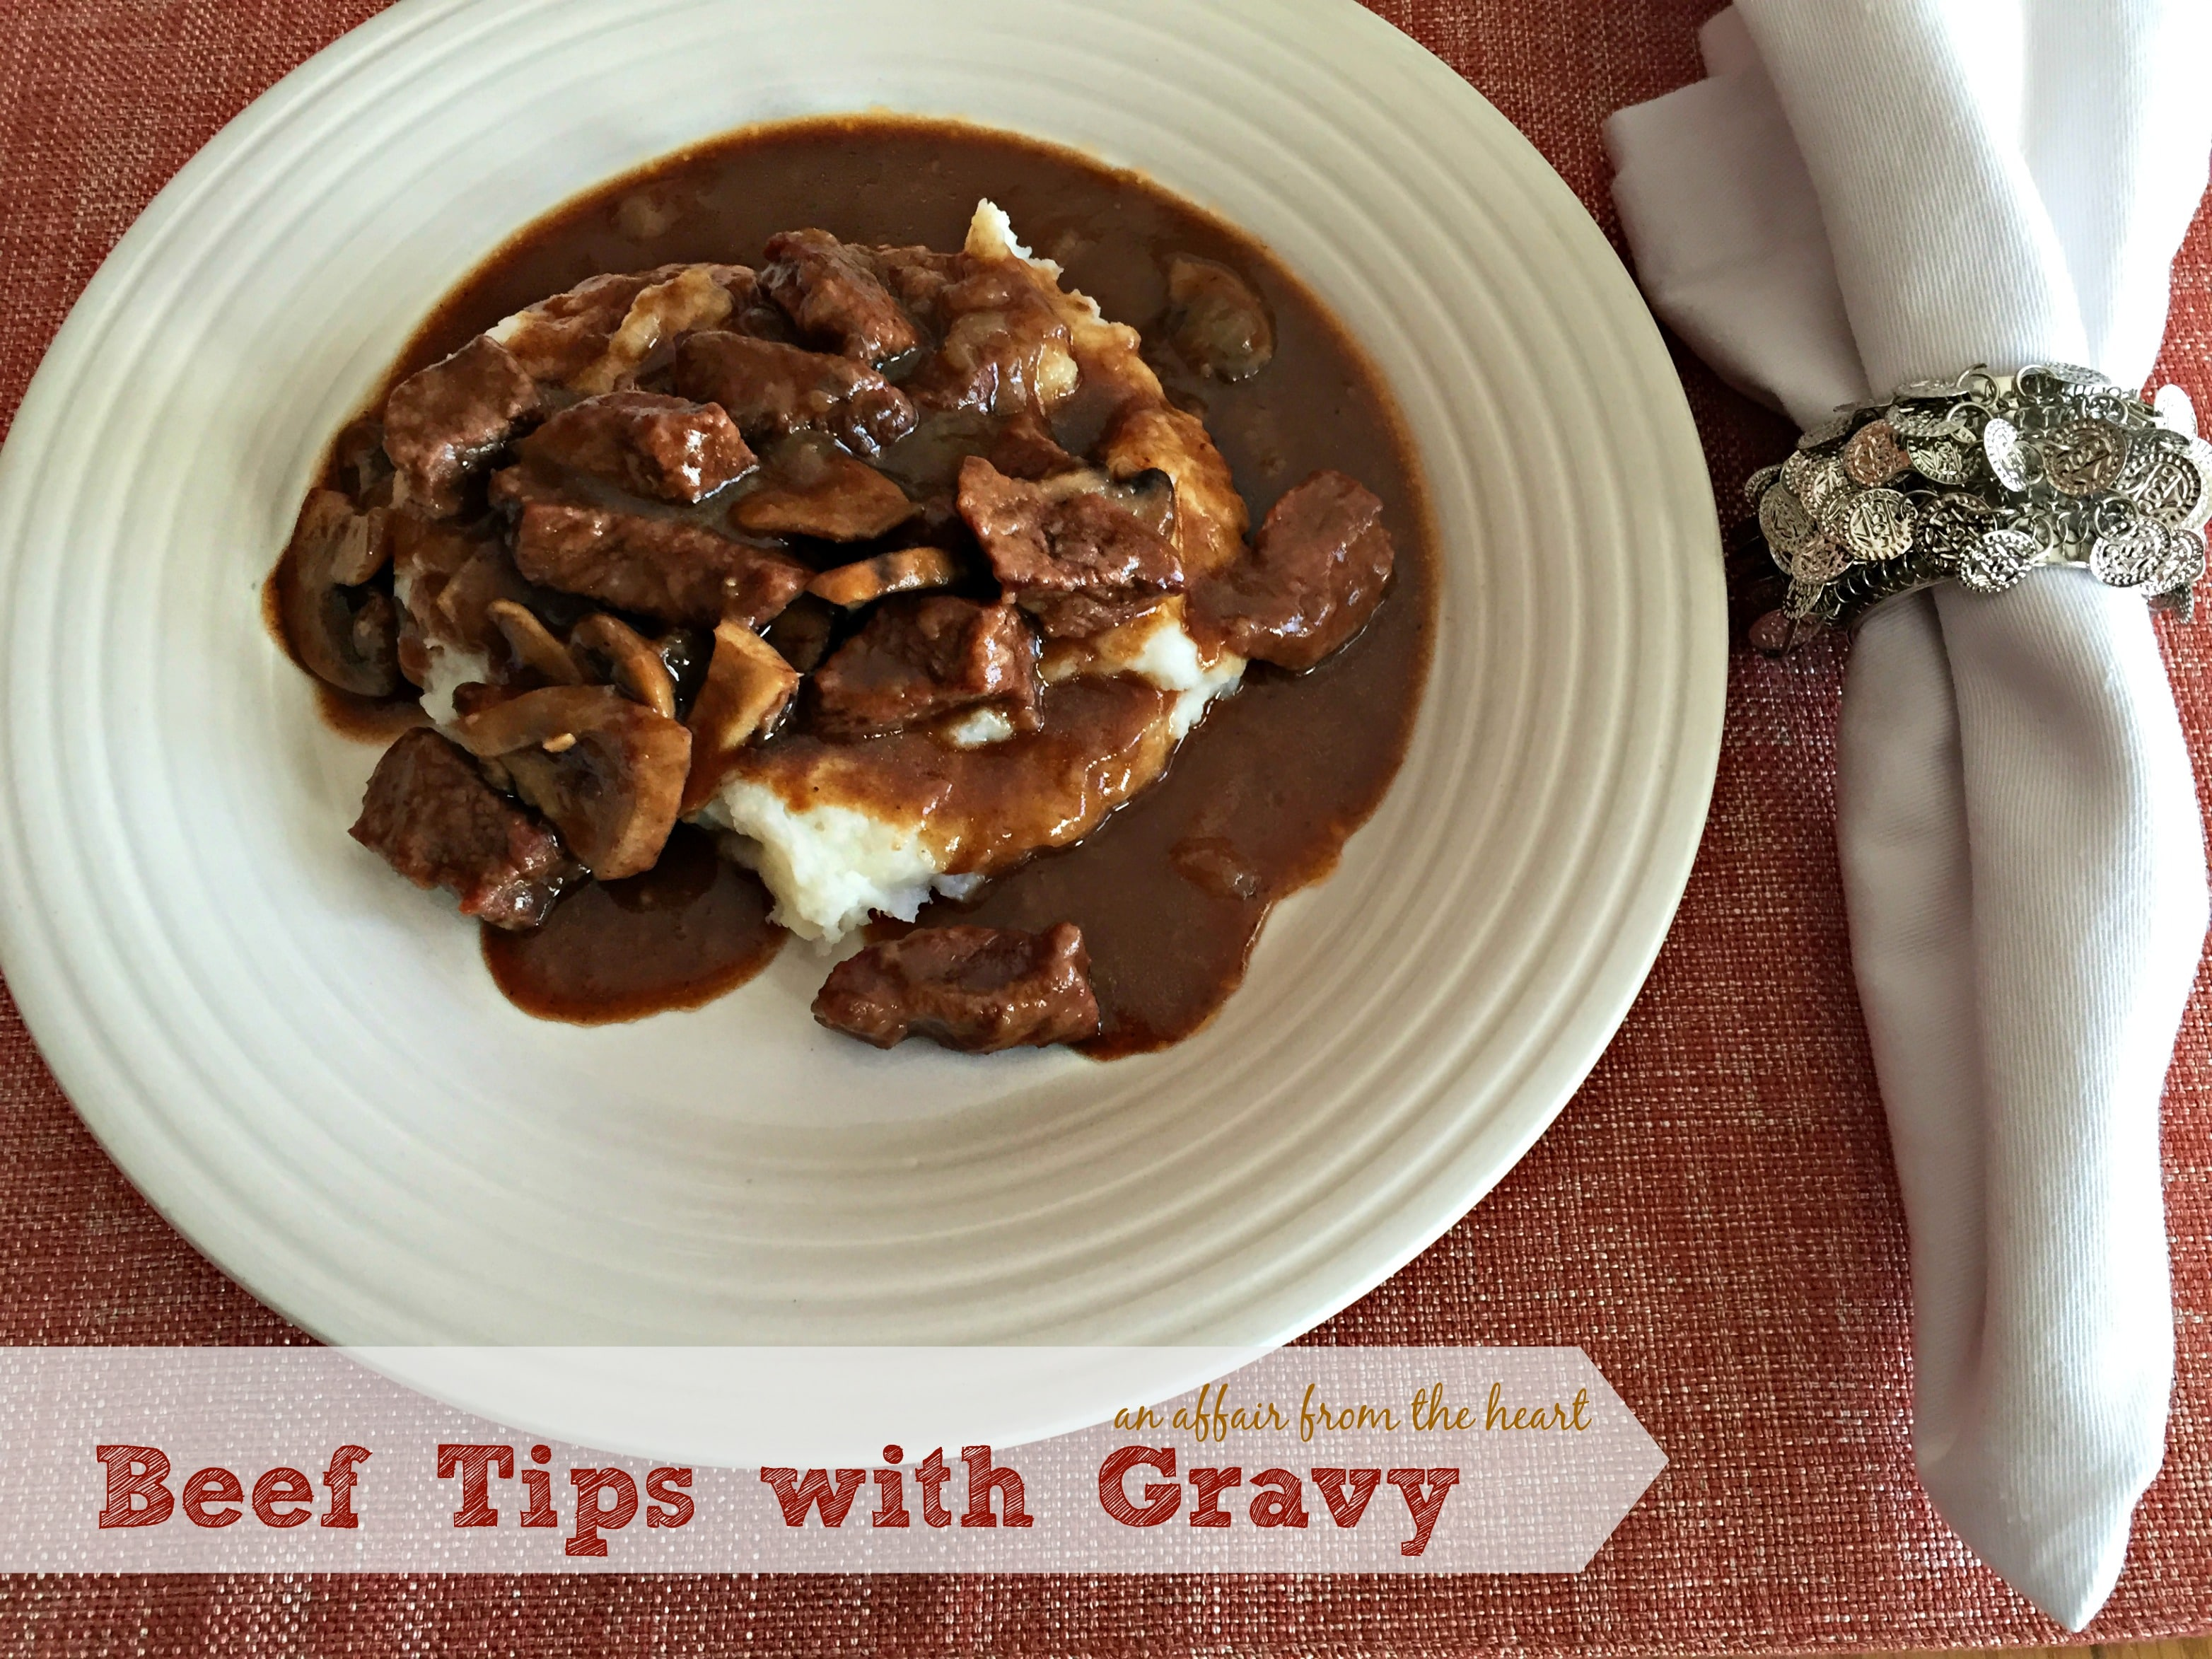 Beef Tips With Gravy